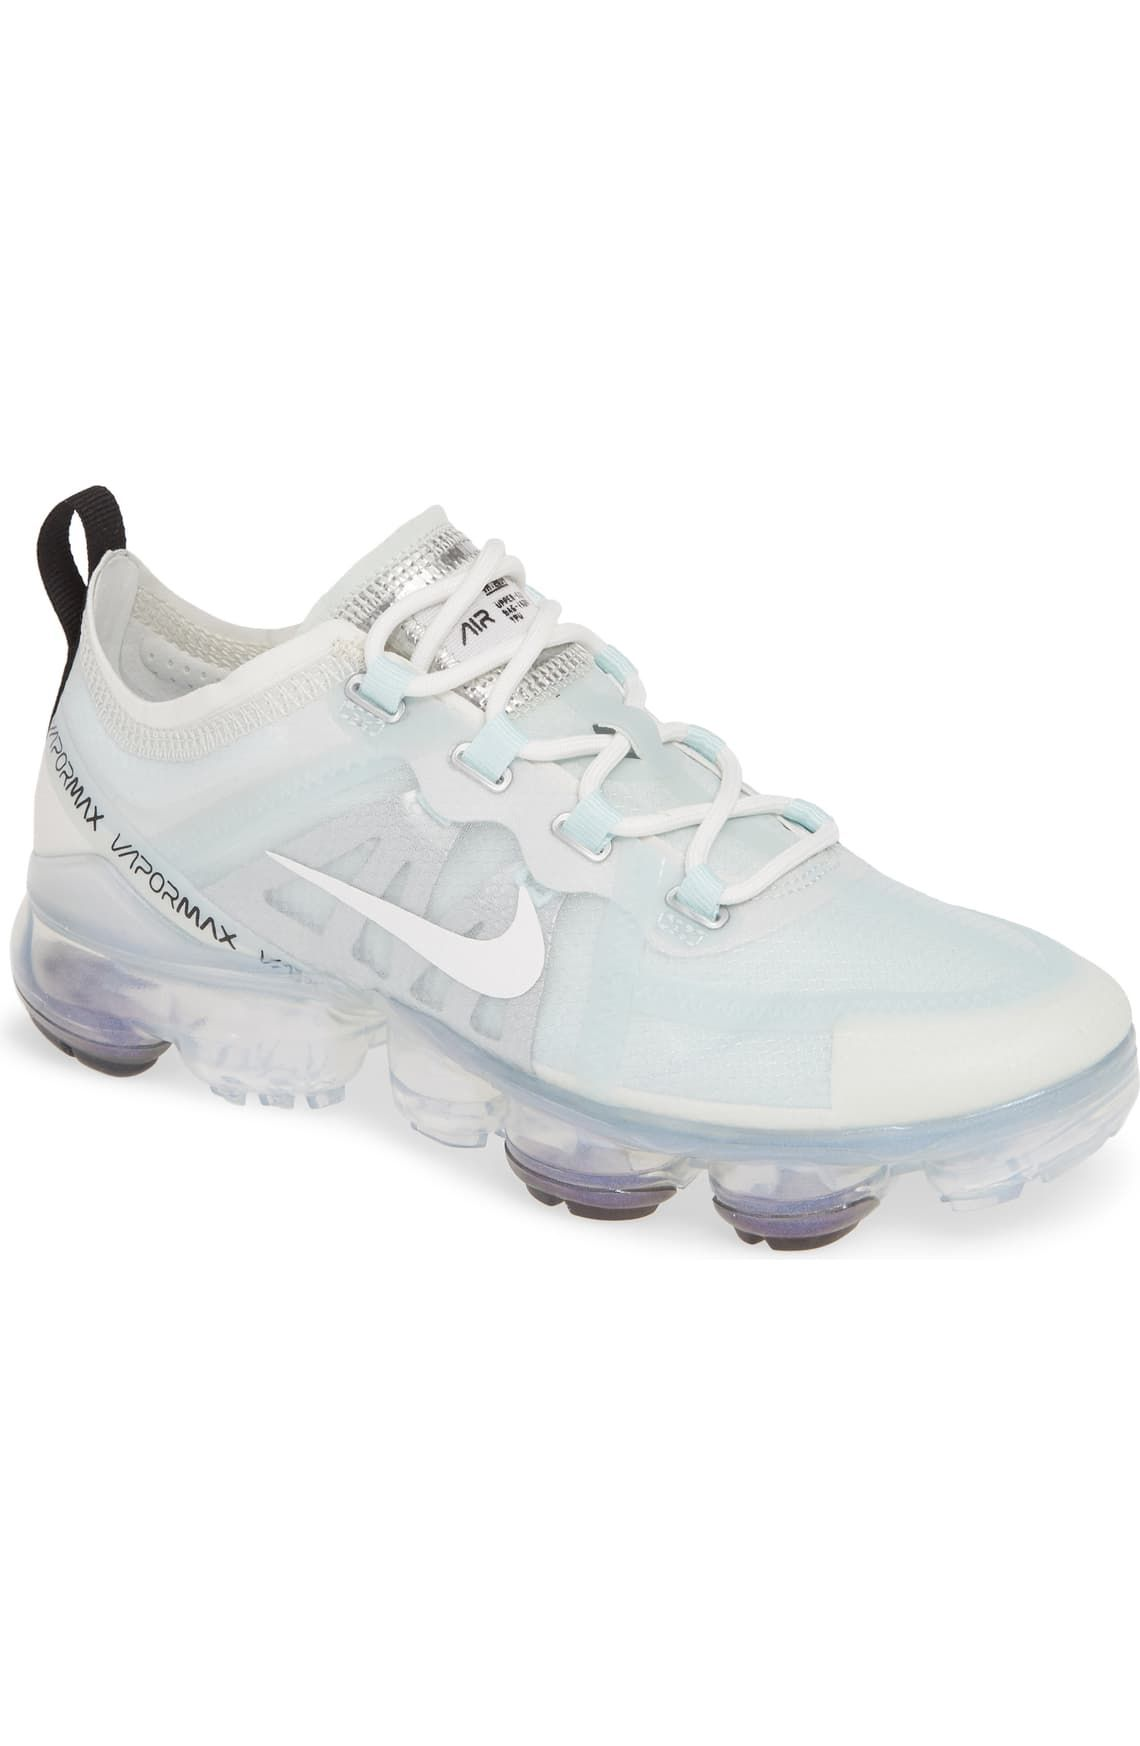 cool trainers 2019